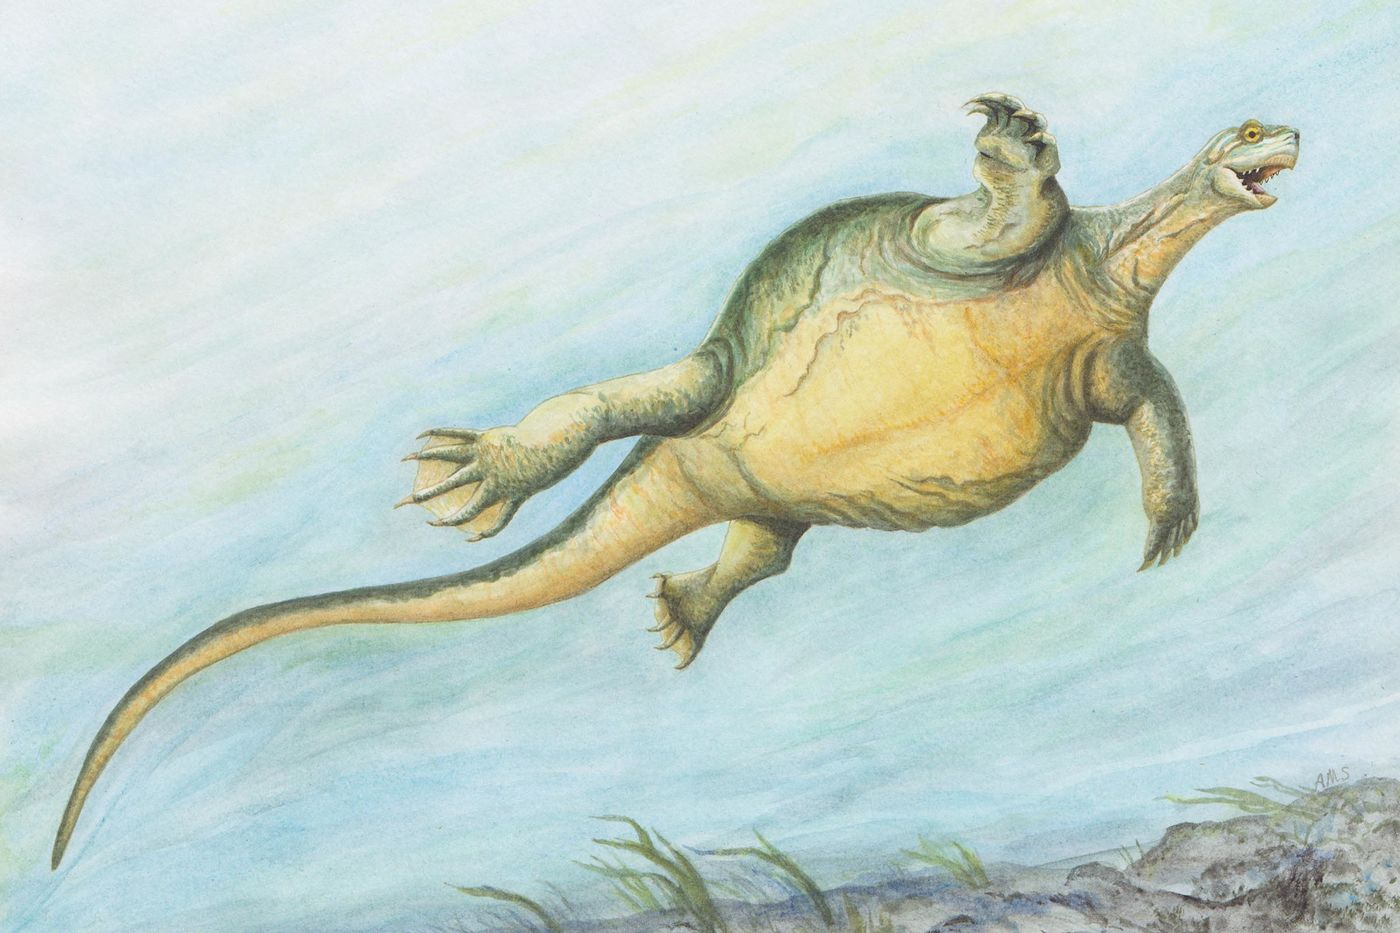 Illustration of a large, shell-less turtle with a rounded body and long tail, swimming underwater. The sea floor appears rocky, with some grasses.